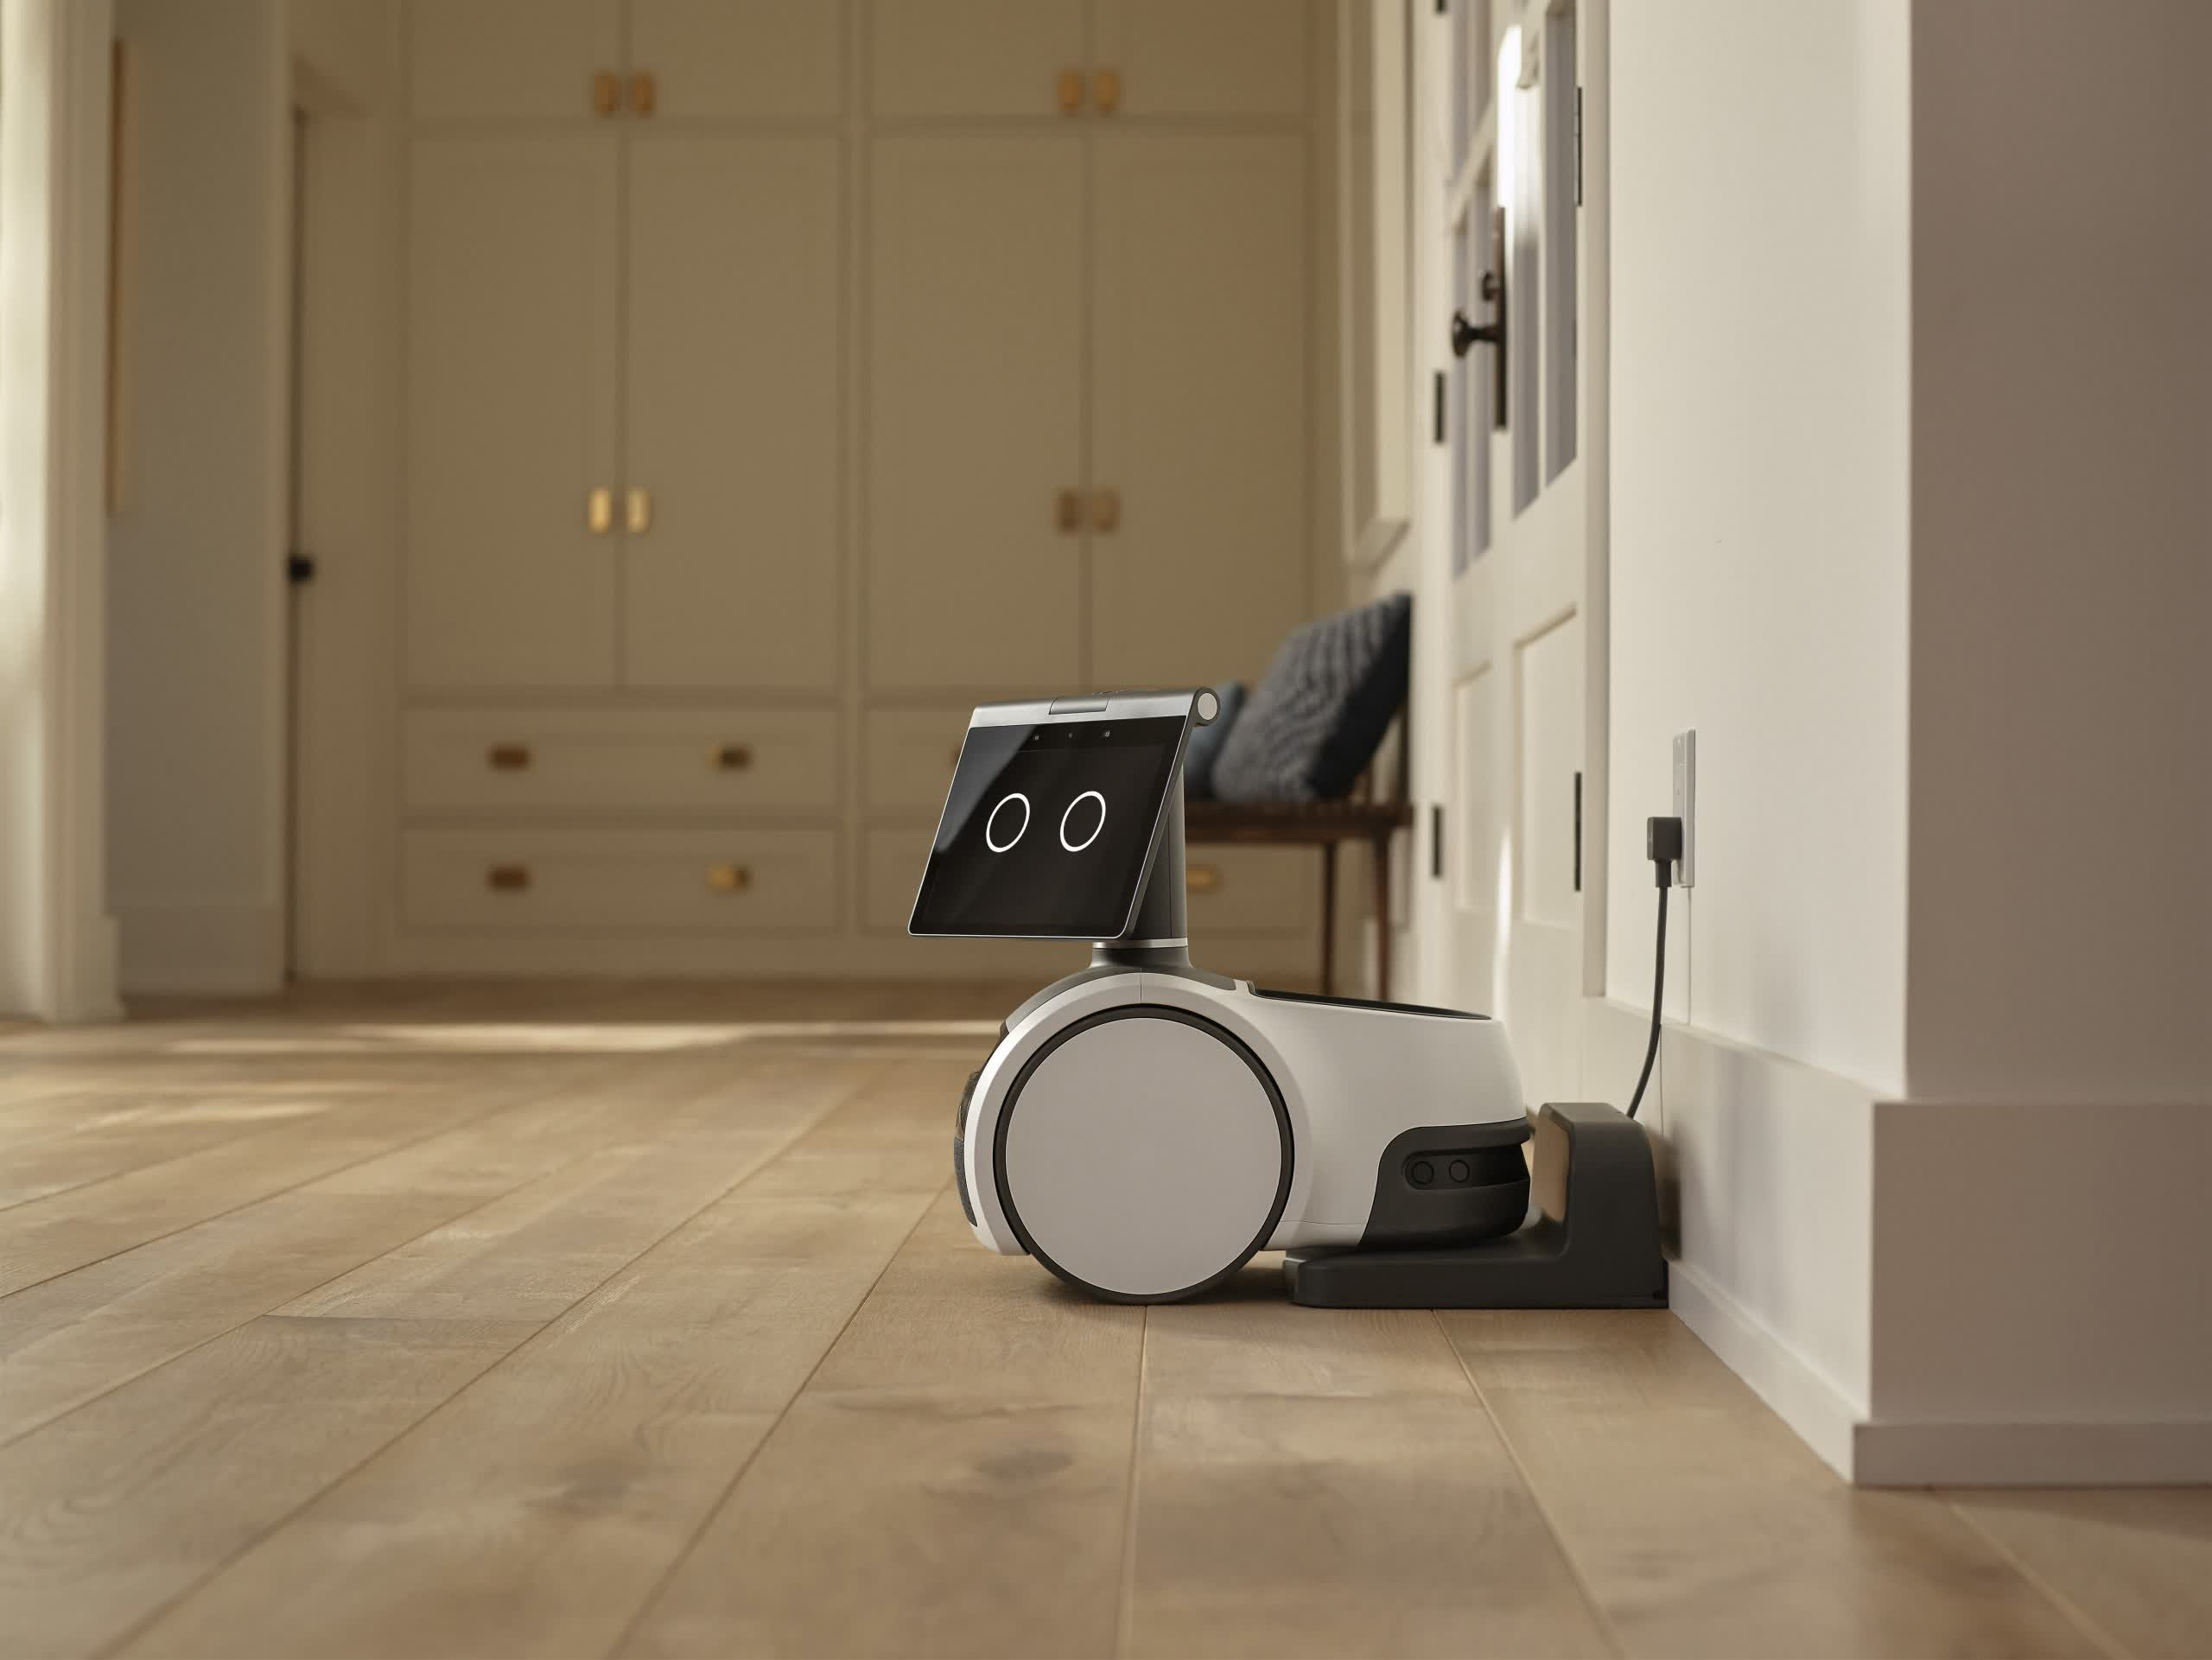 Amazon Astro brings a personal robot into your home